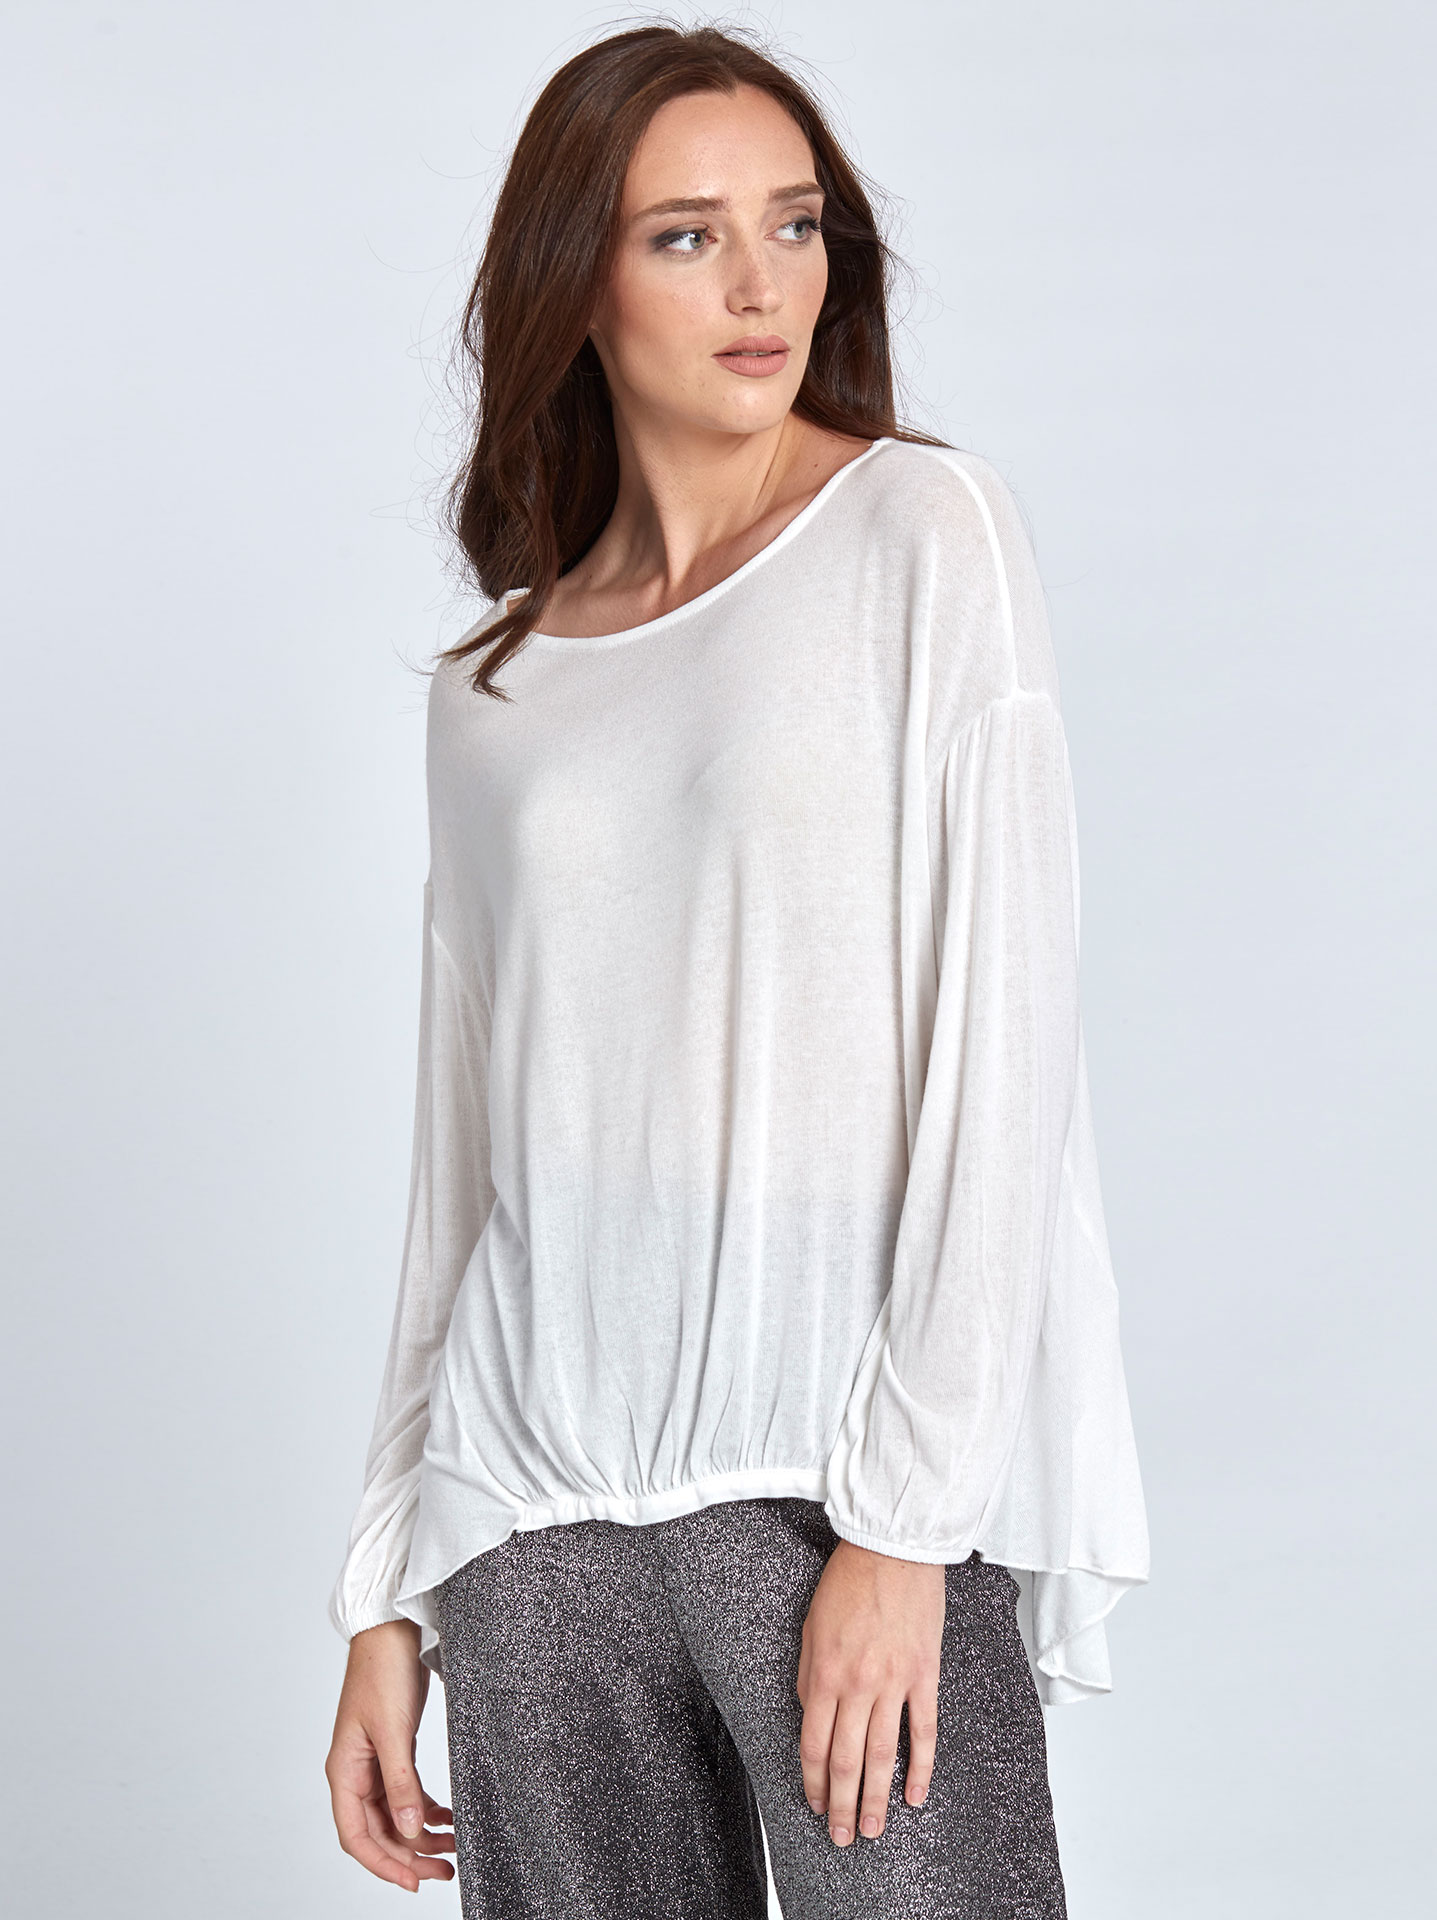 b0d3475040eea Top with shirring detail in off white